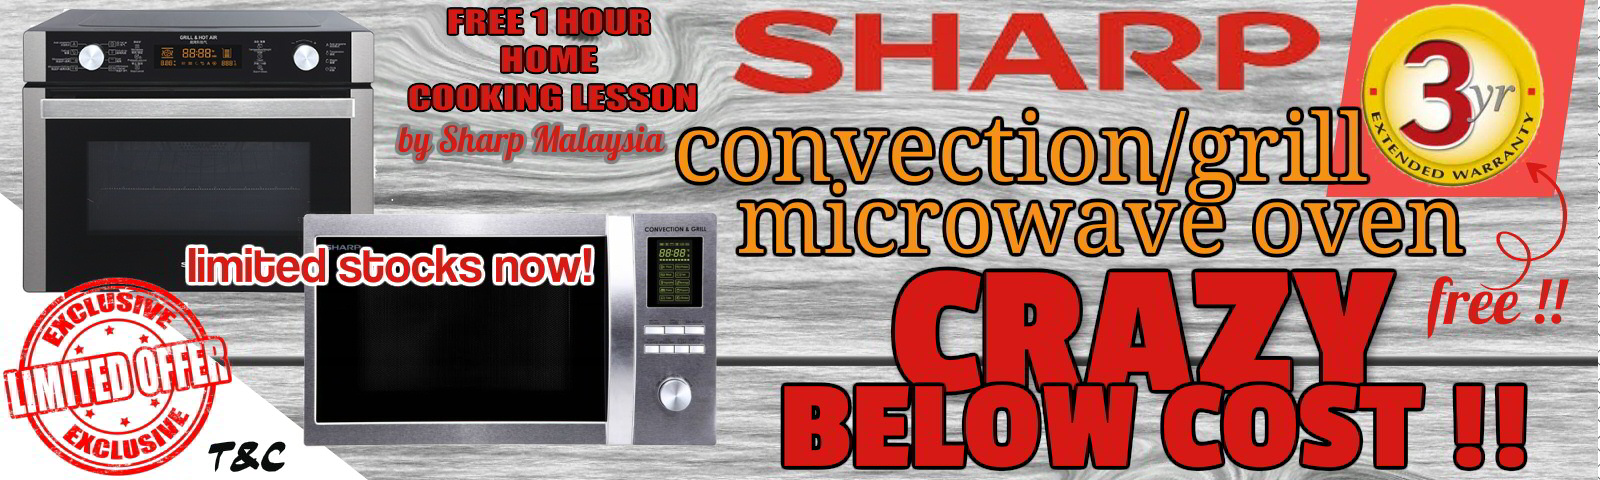 Sharp Convection Microwave on Promo!